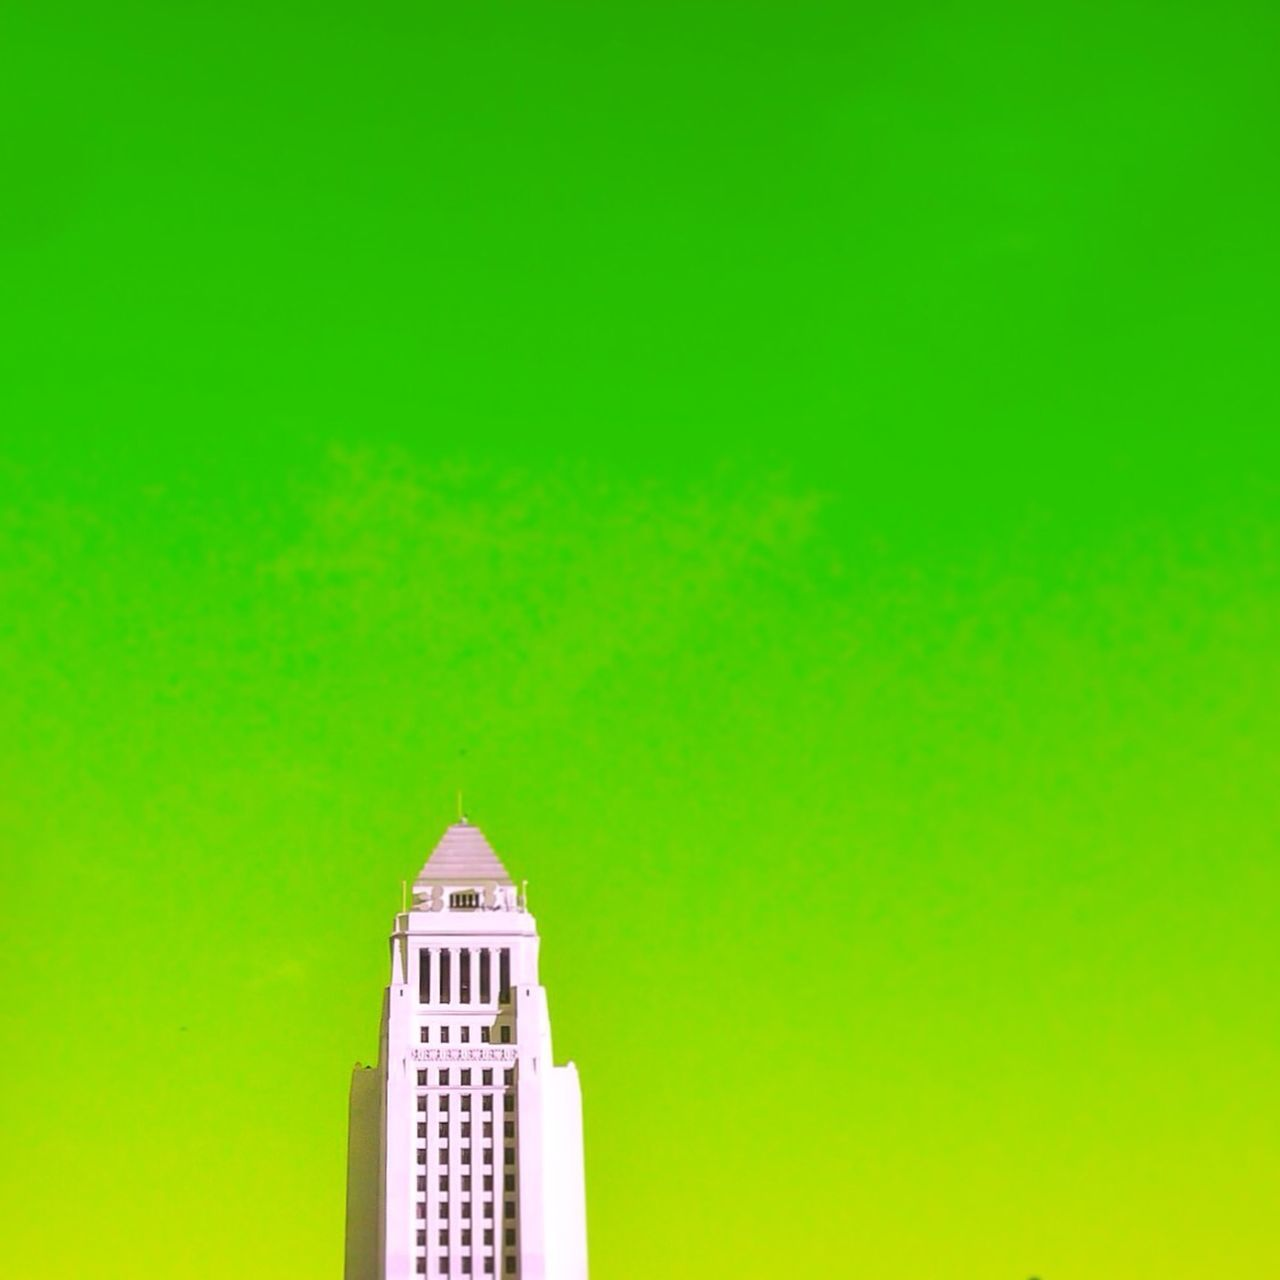 Candyminimal Lacityhall Cityscape Cityscapes City Hall Losangeles Architecture